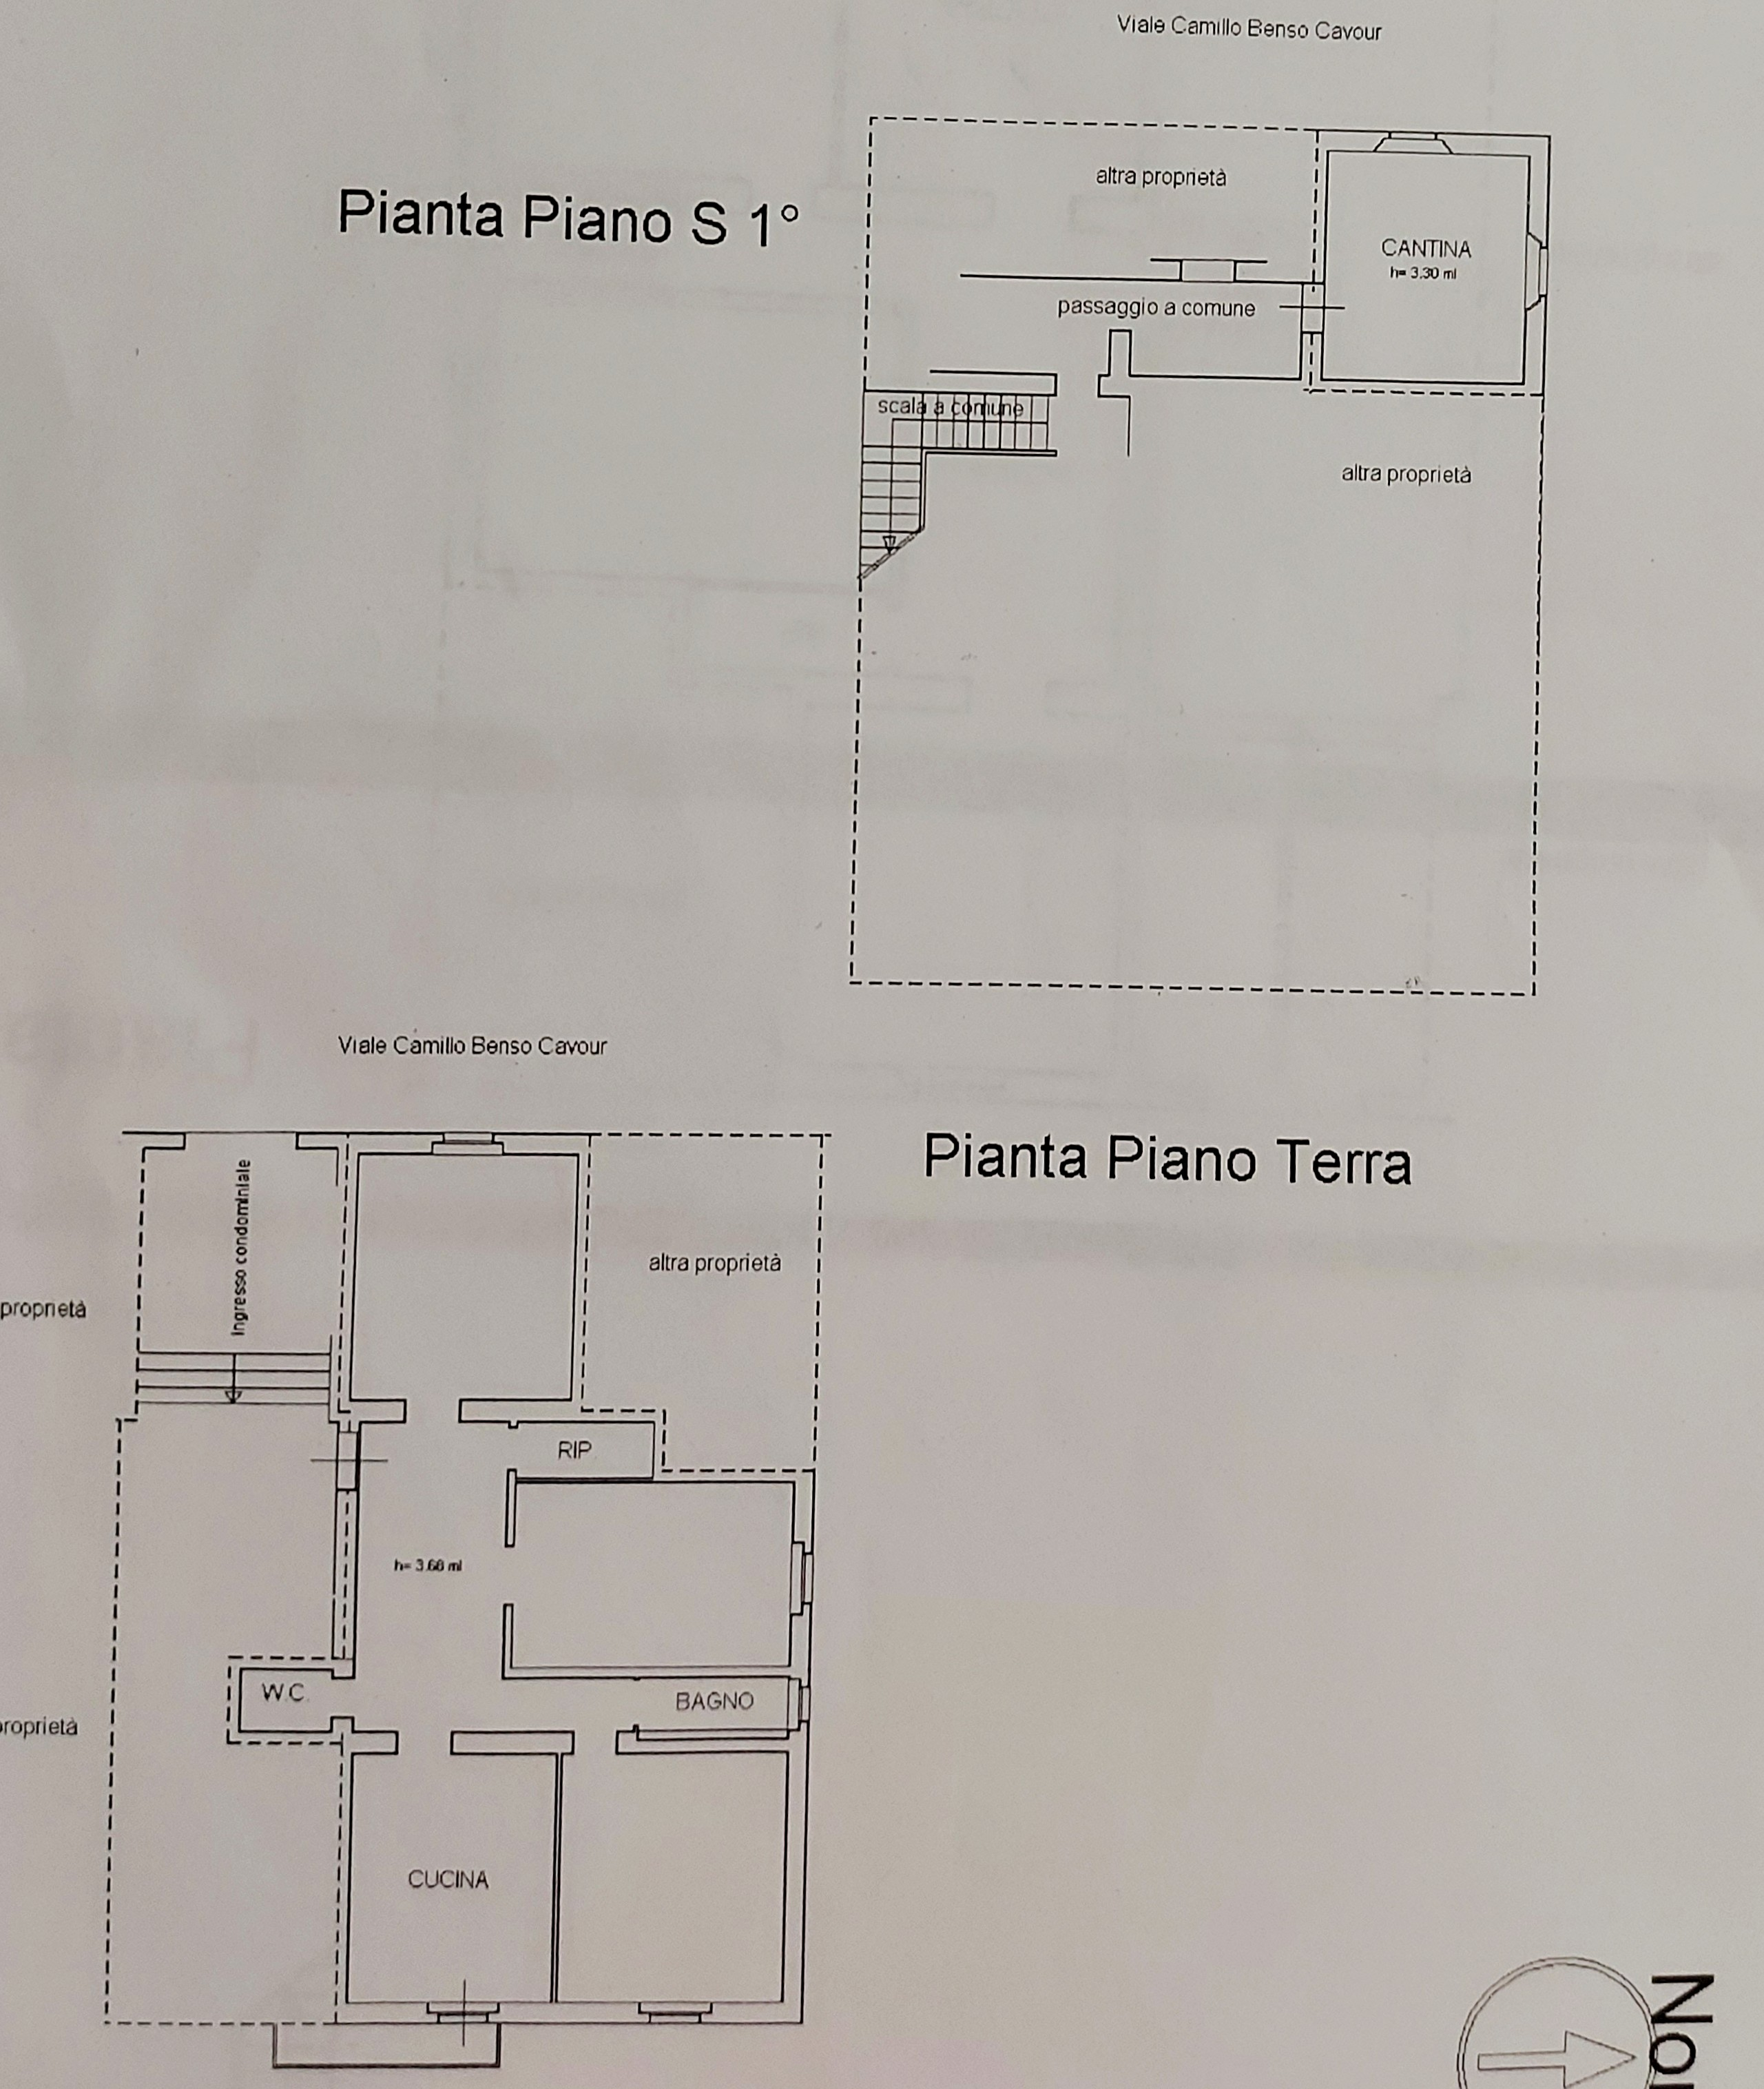 Apartment for sale, ref. 874 (Plan 1/1)